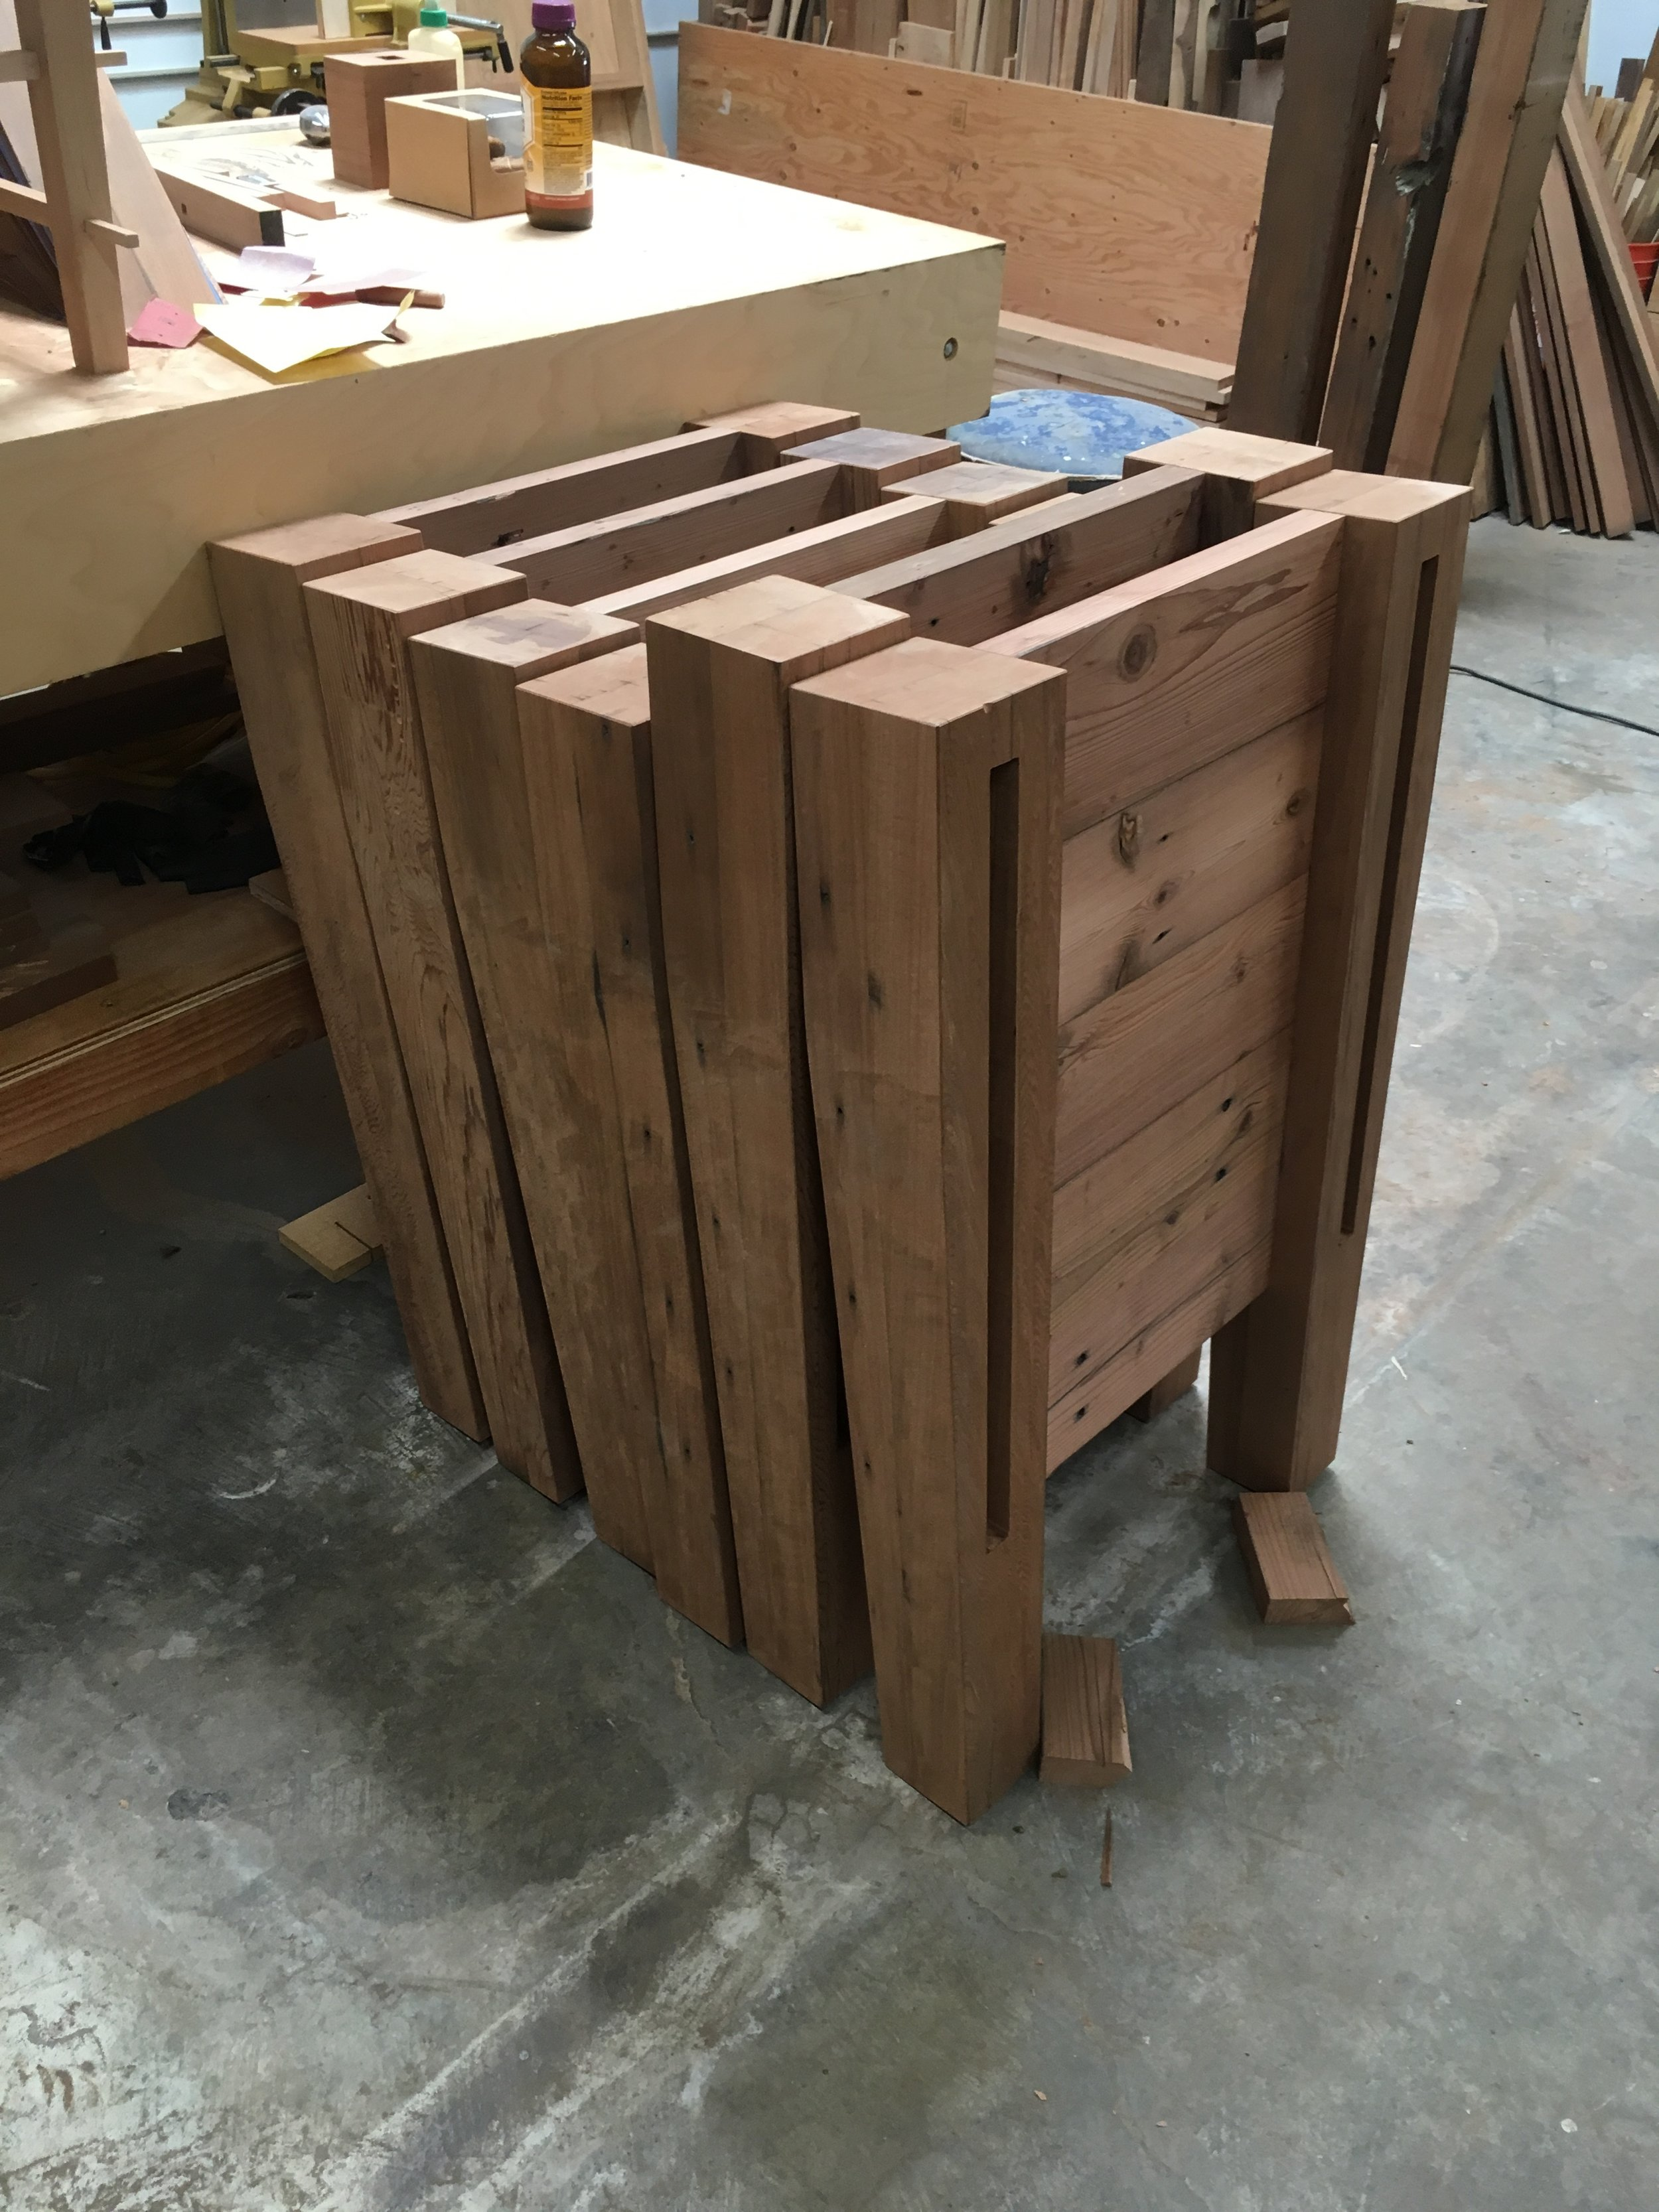 Finished ends